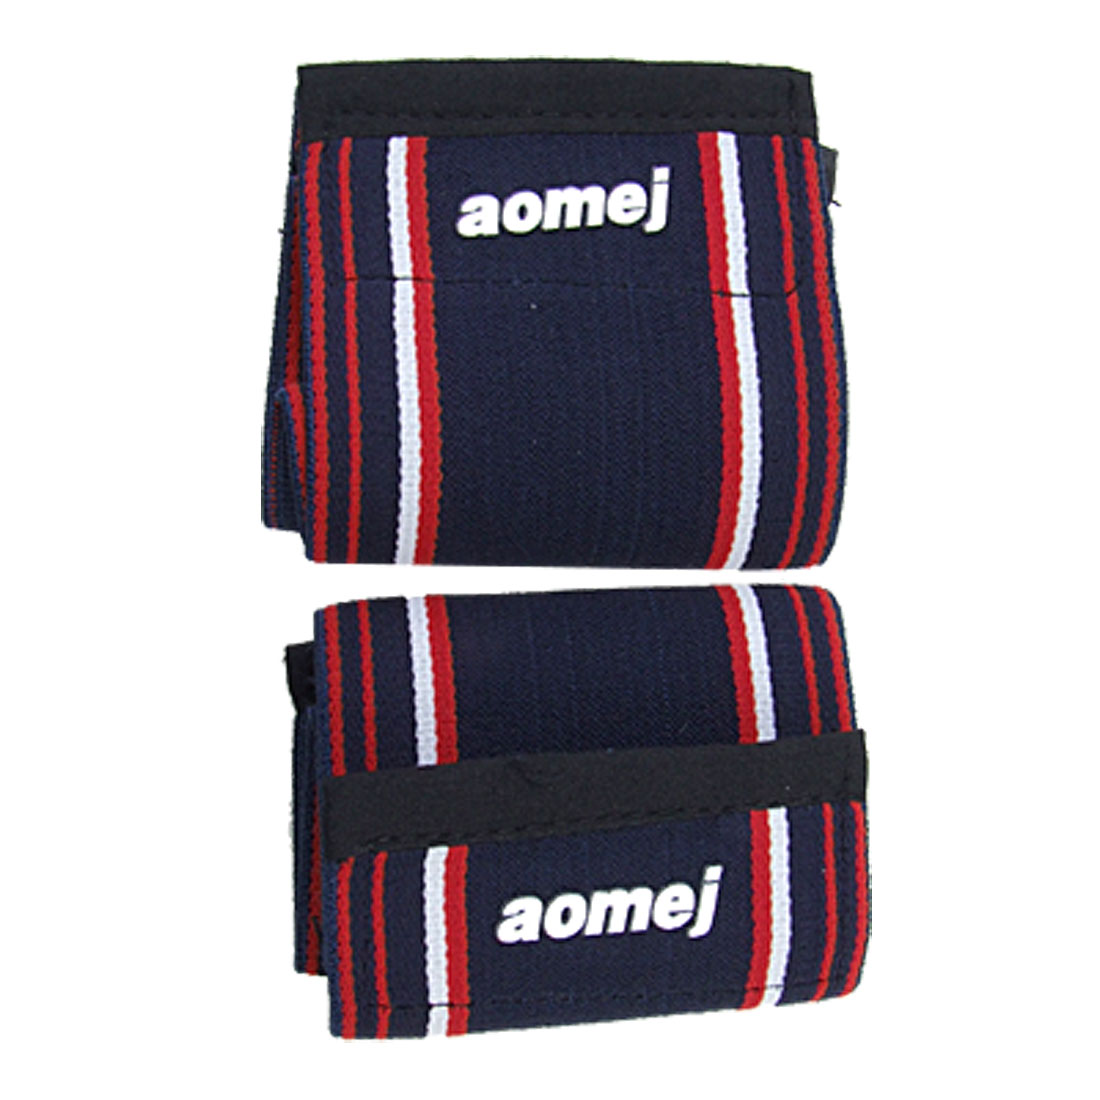 2pcs High Elasticity Stripes Dark Blue Sports Wrist Band Support